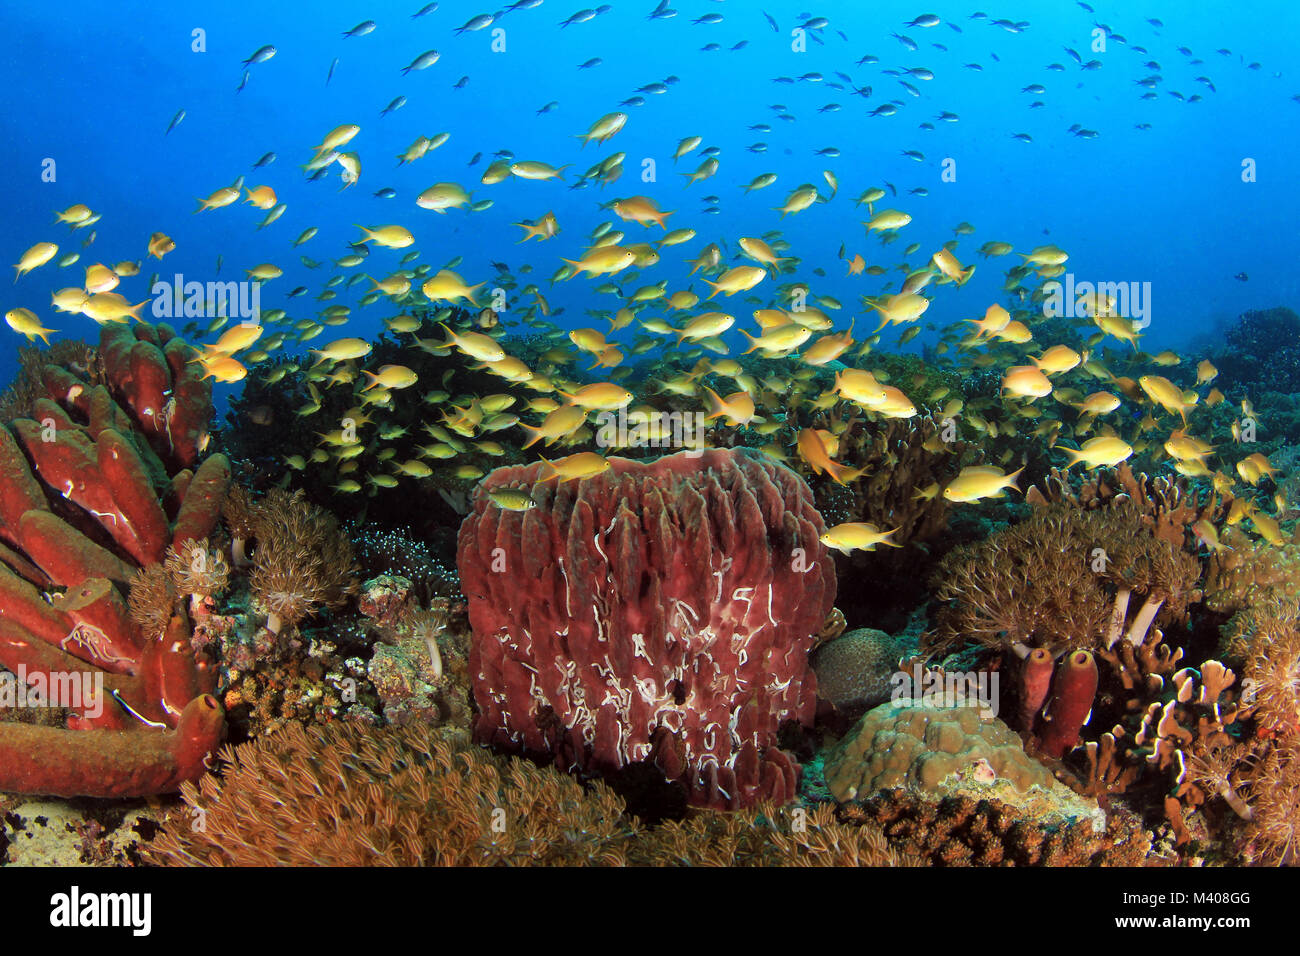 Colorful Coral Reef with Schools of Fish against Blue Water. Pescador Island, Moalboal, Philippines - Stock Image